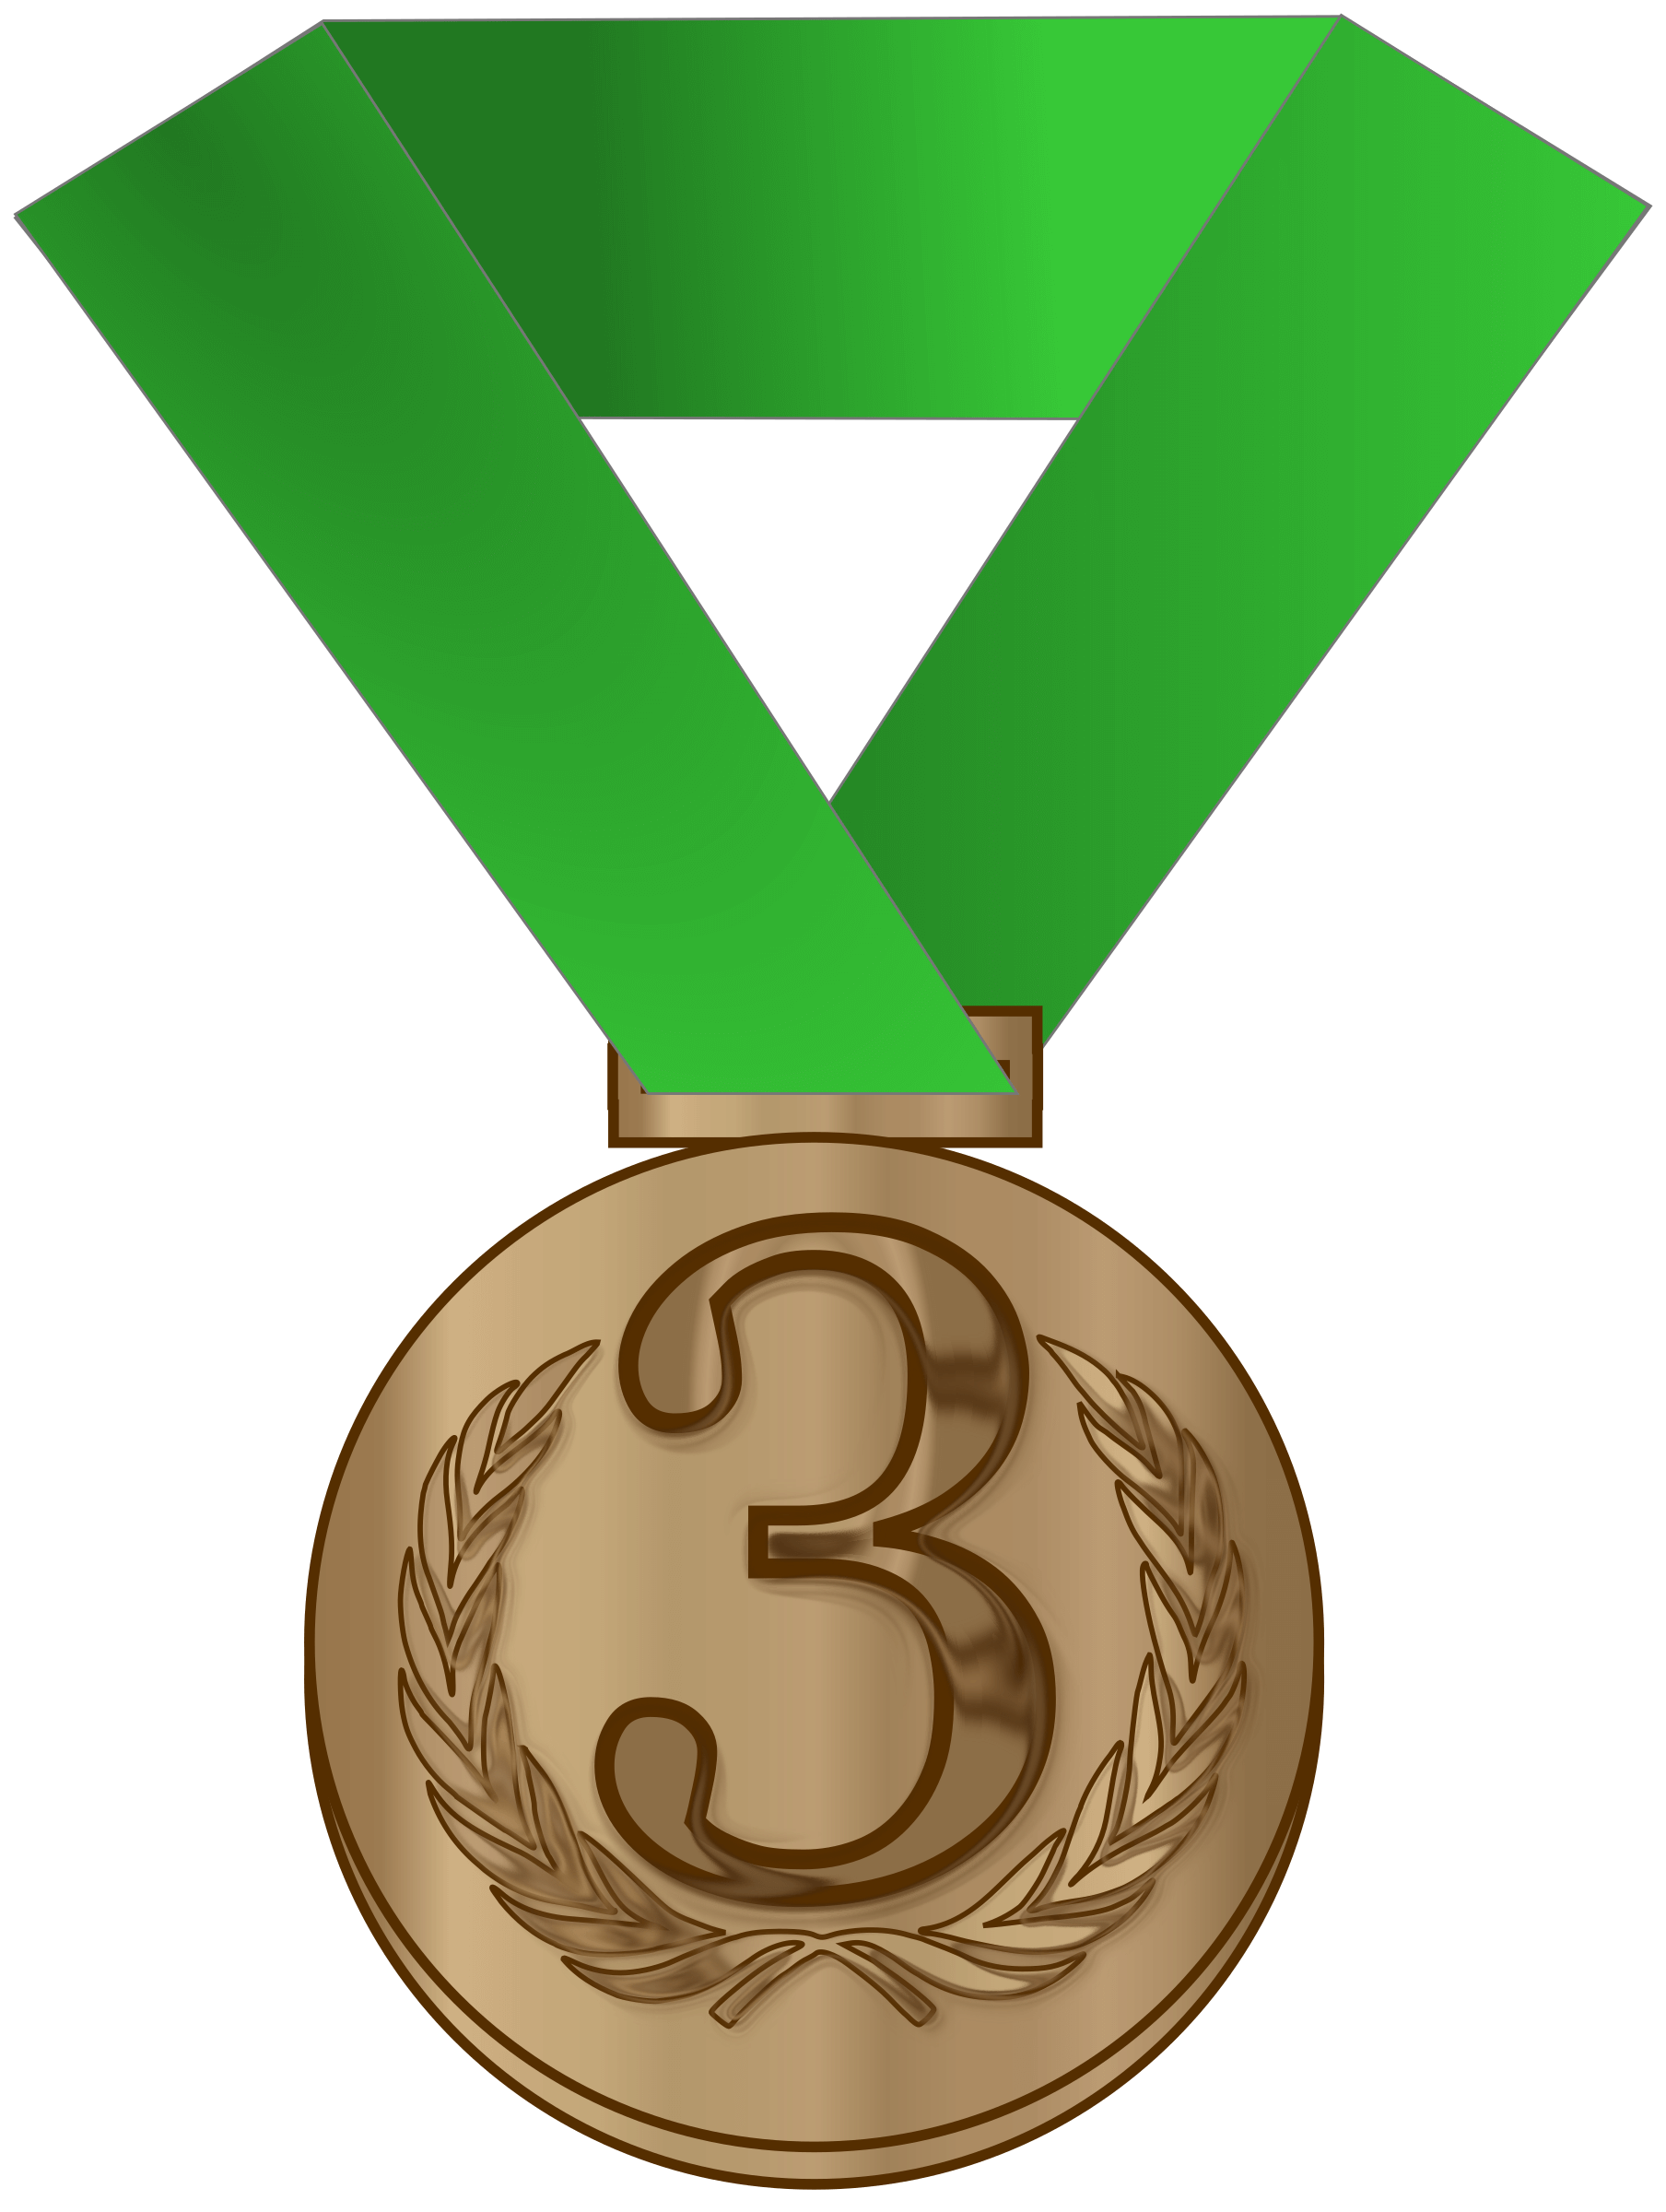 Medals drawing 3rd. Gold medal template free